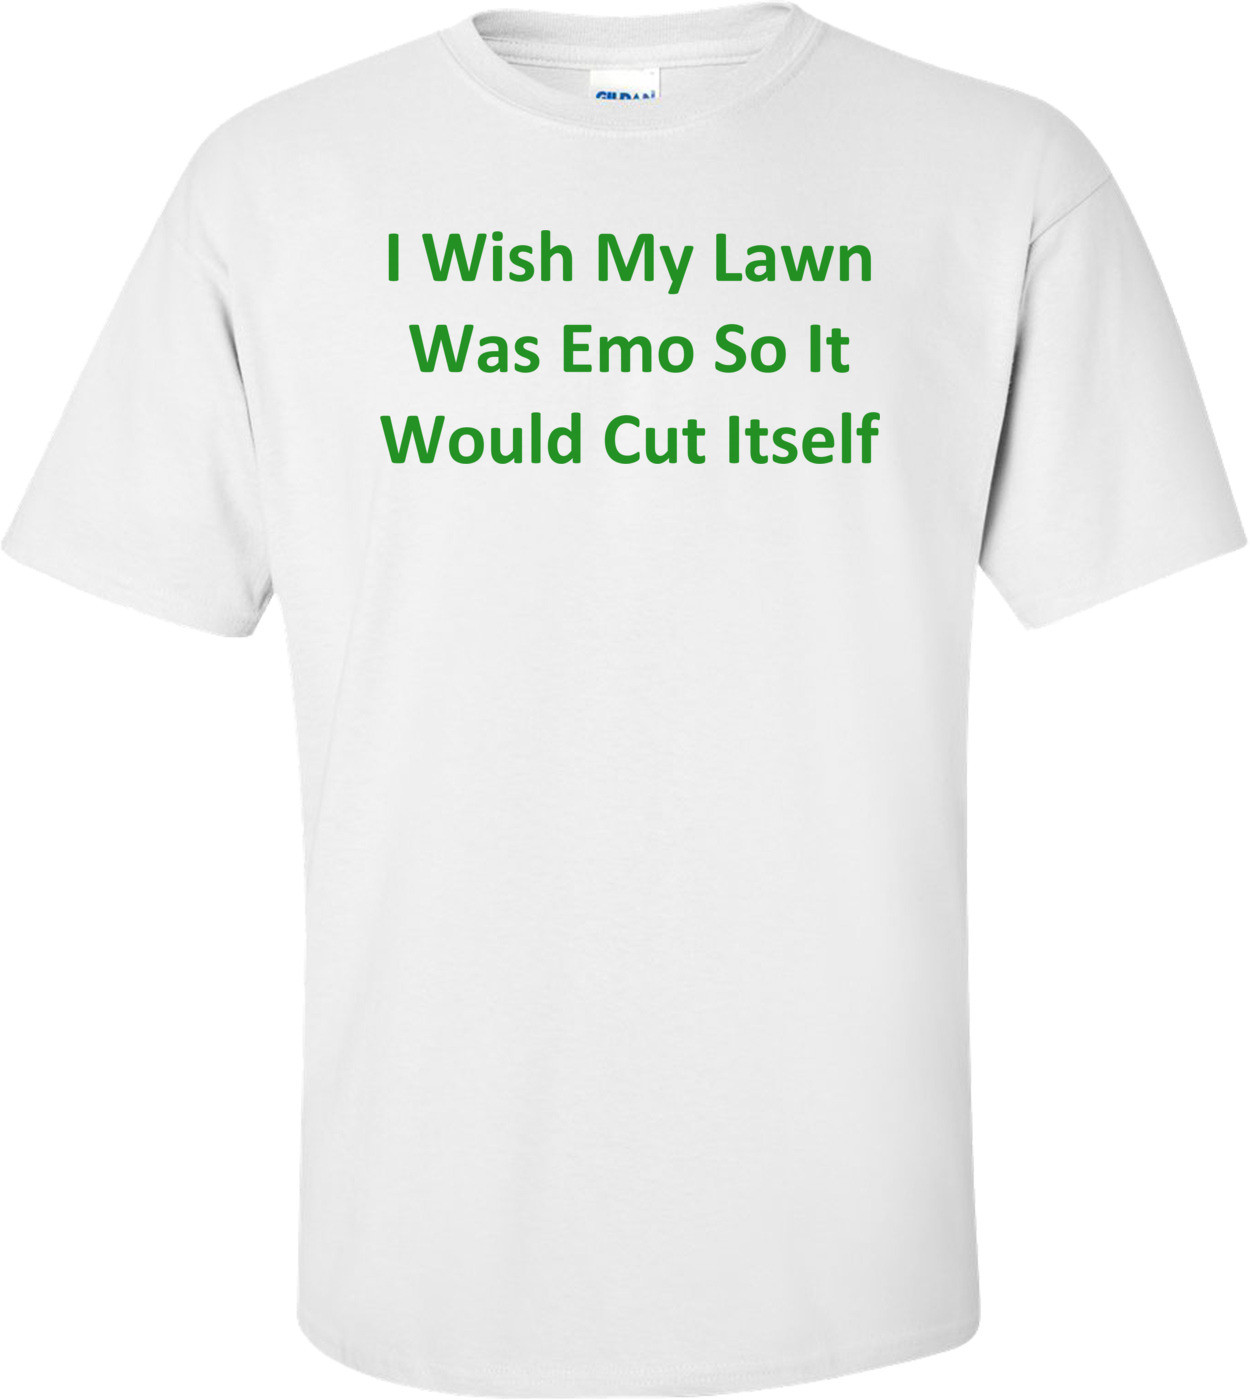 I Wish My Lawn Was Emo So It Would Cut Itself T-Shirt